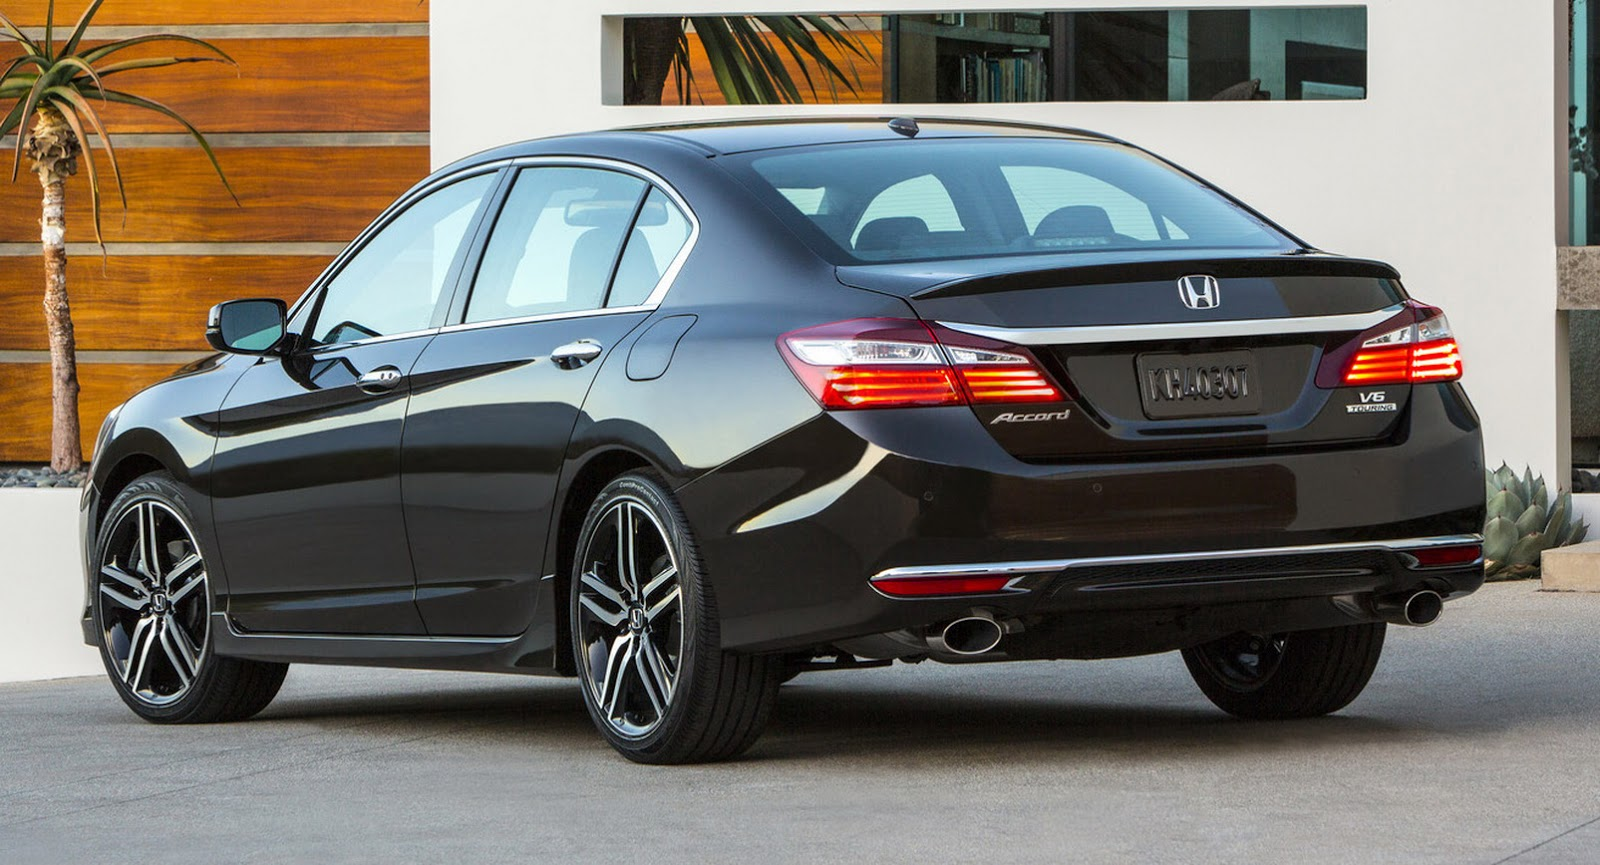 Honda Accord 2014 Coupe V6 >> Honda Debuts 2016 Accord Facelift, We Visually Compare It With The 2015MY | Carscoops